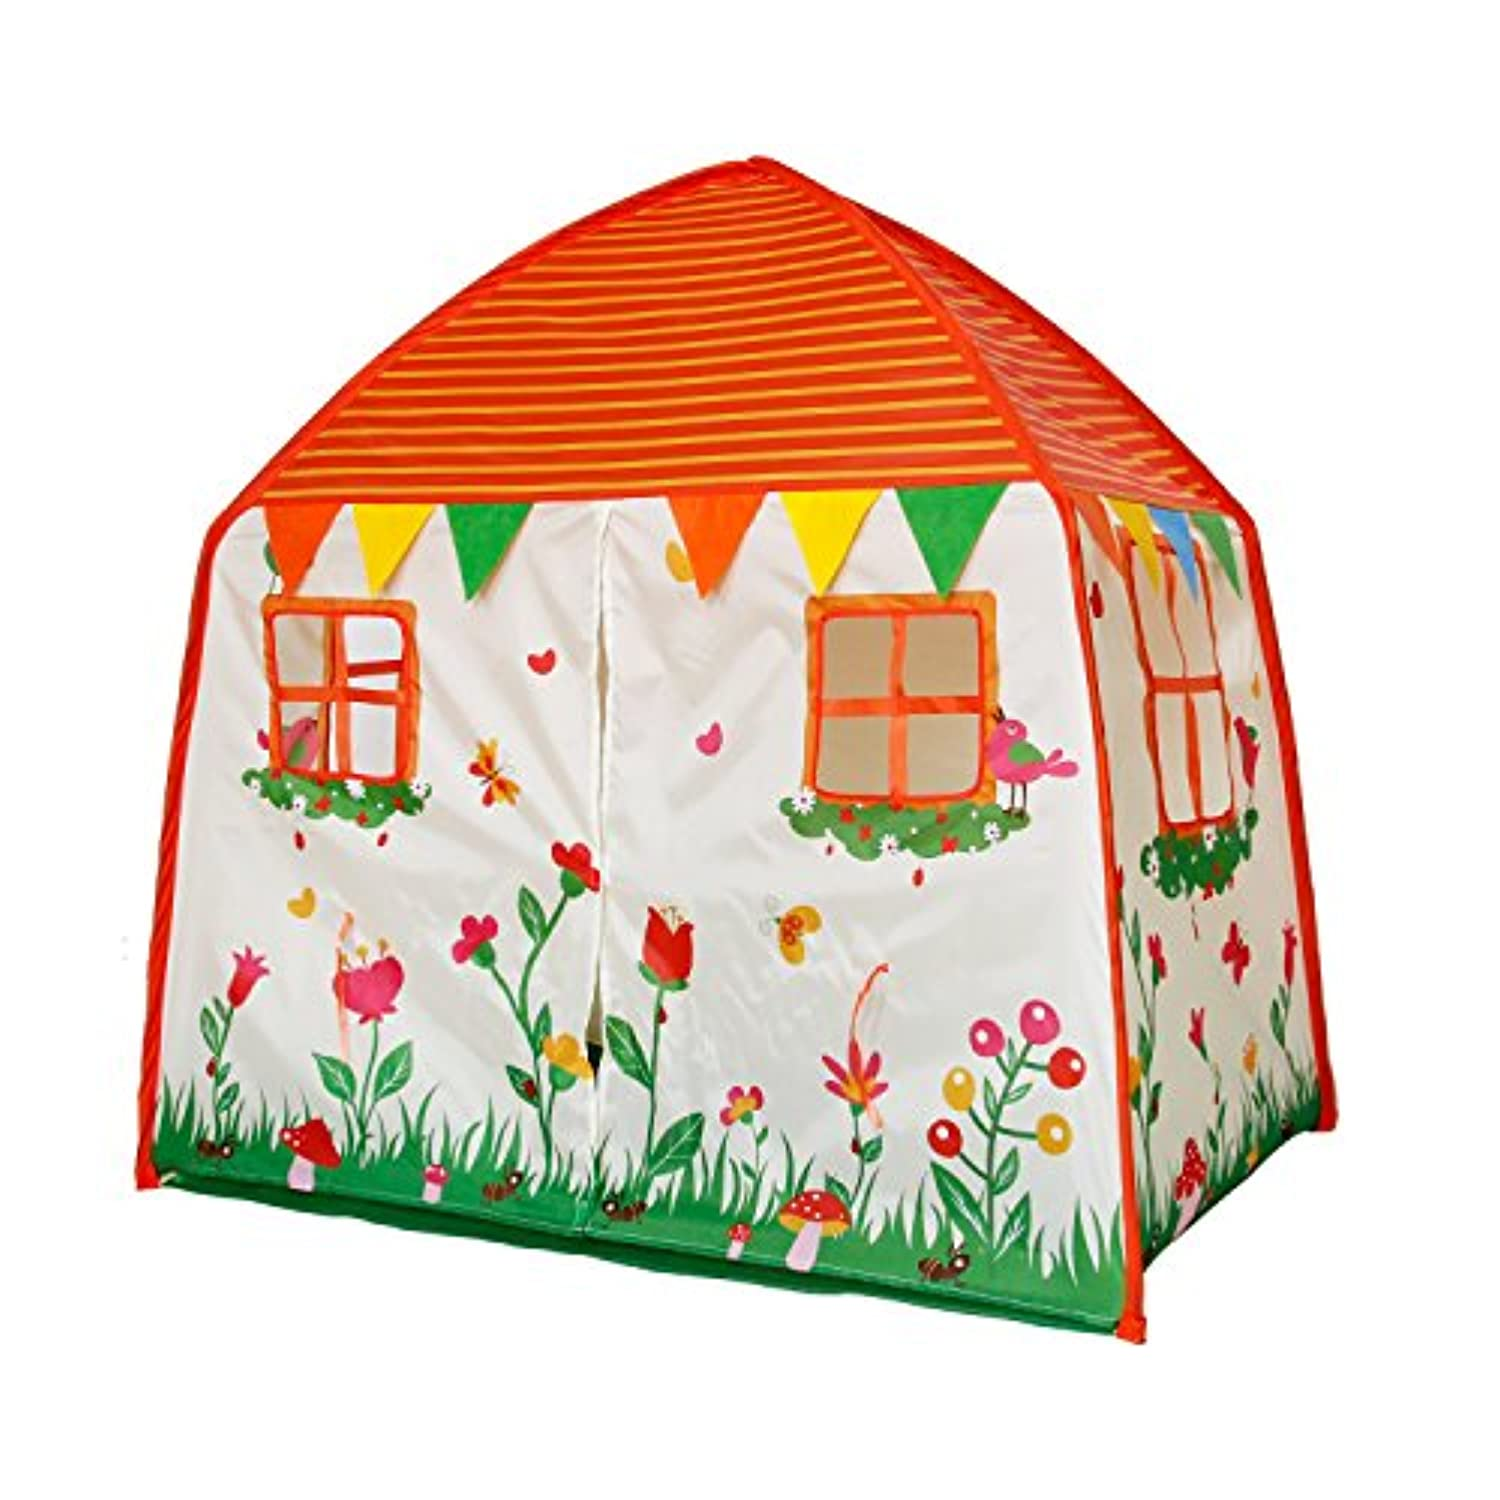 (White) - Homfu Kids Tent Playhouse For Children To Play Indoor Garden and Outdoors Toy Princess tents for Girls (Garden Playhouse) (White)